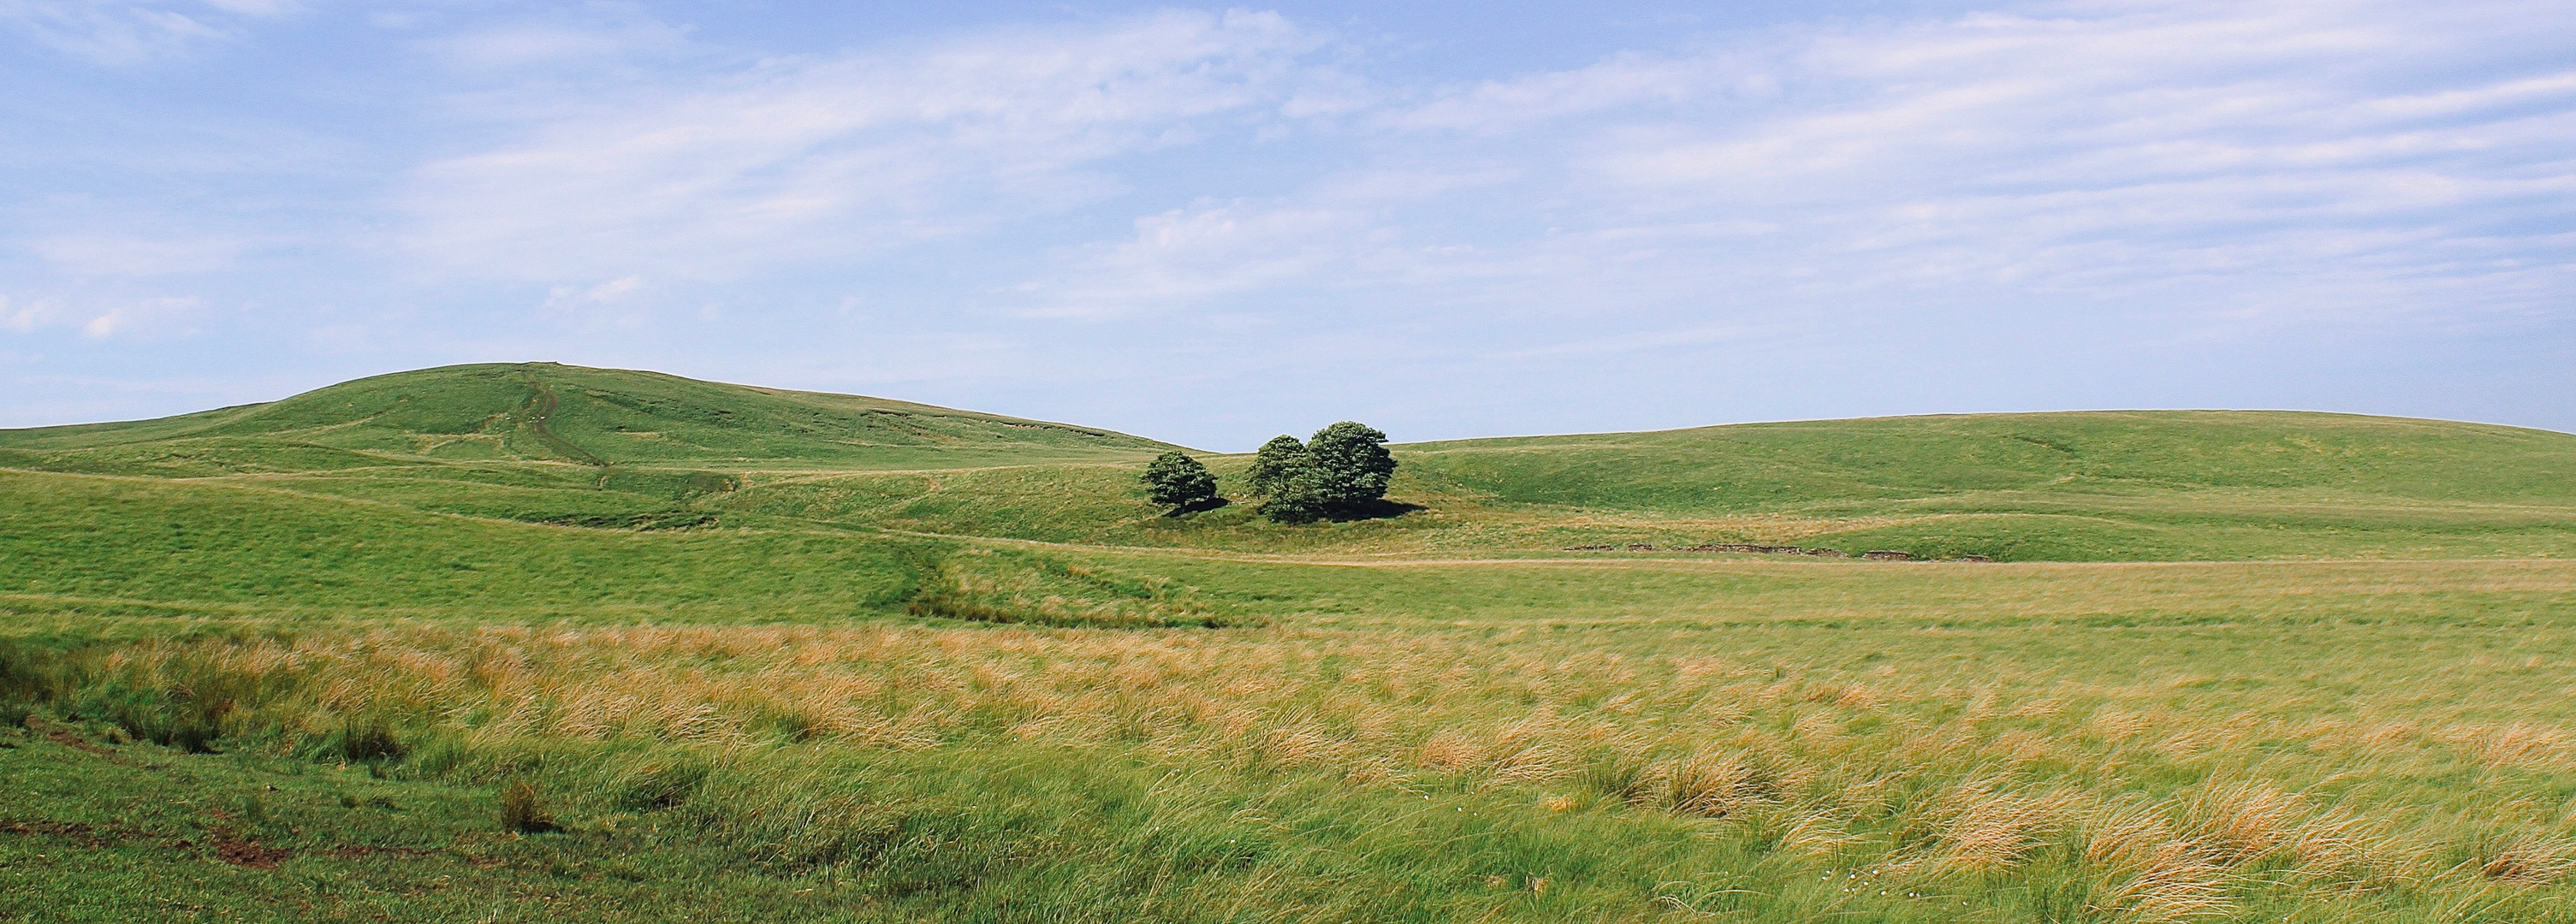 Lovely Lonely Trees on a Summer's Day